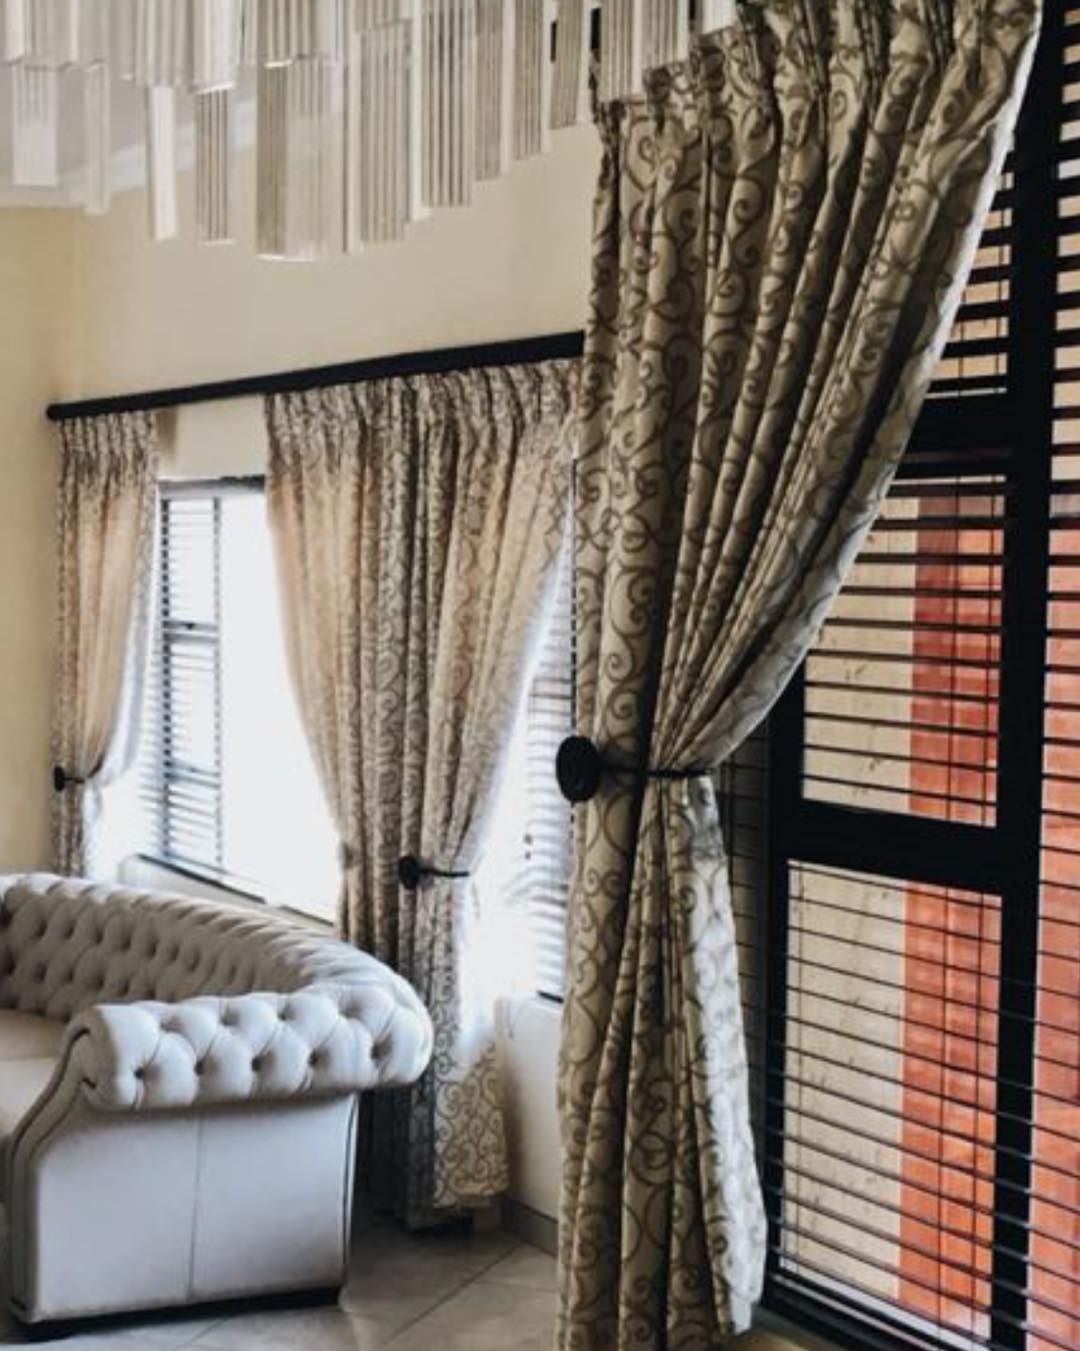 Another Stunning Project By Renes Blinds And Curtains Renesdecor Renesblindsandcurtains Renes Curtains Living Room Blinds Dining Room Decor Blinds Design